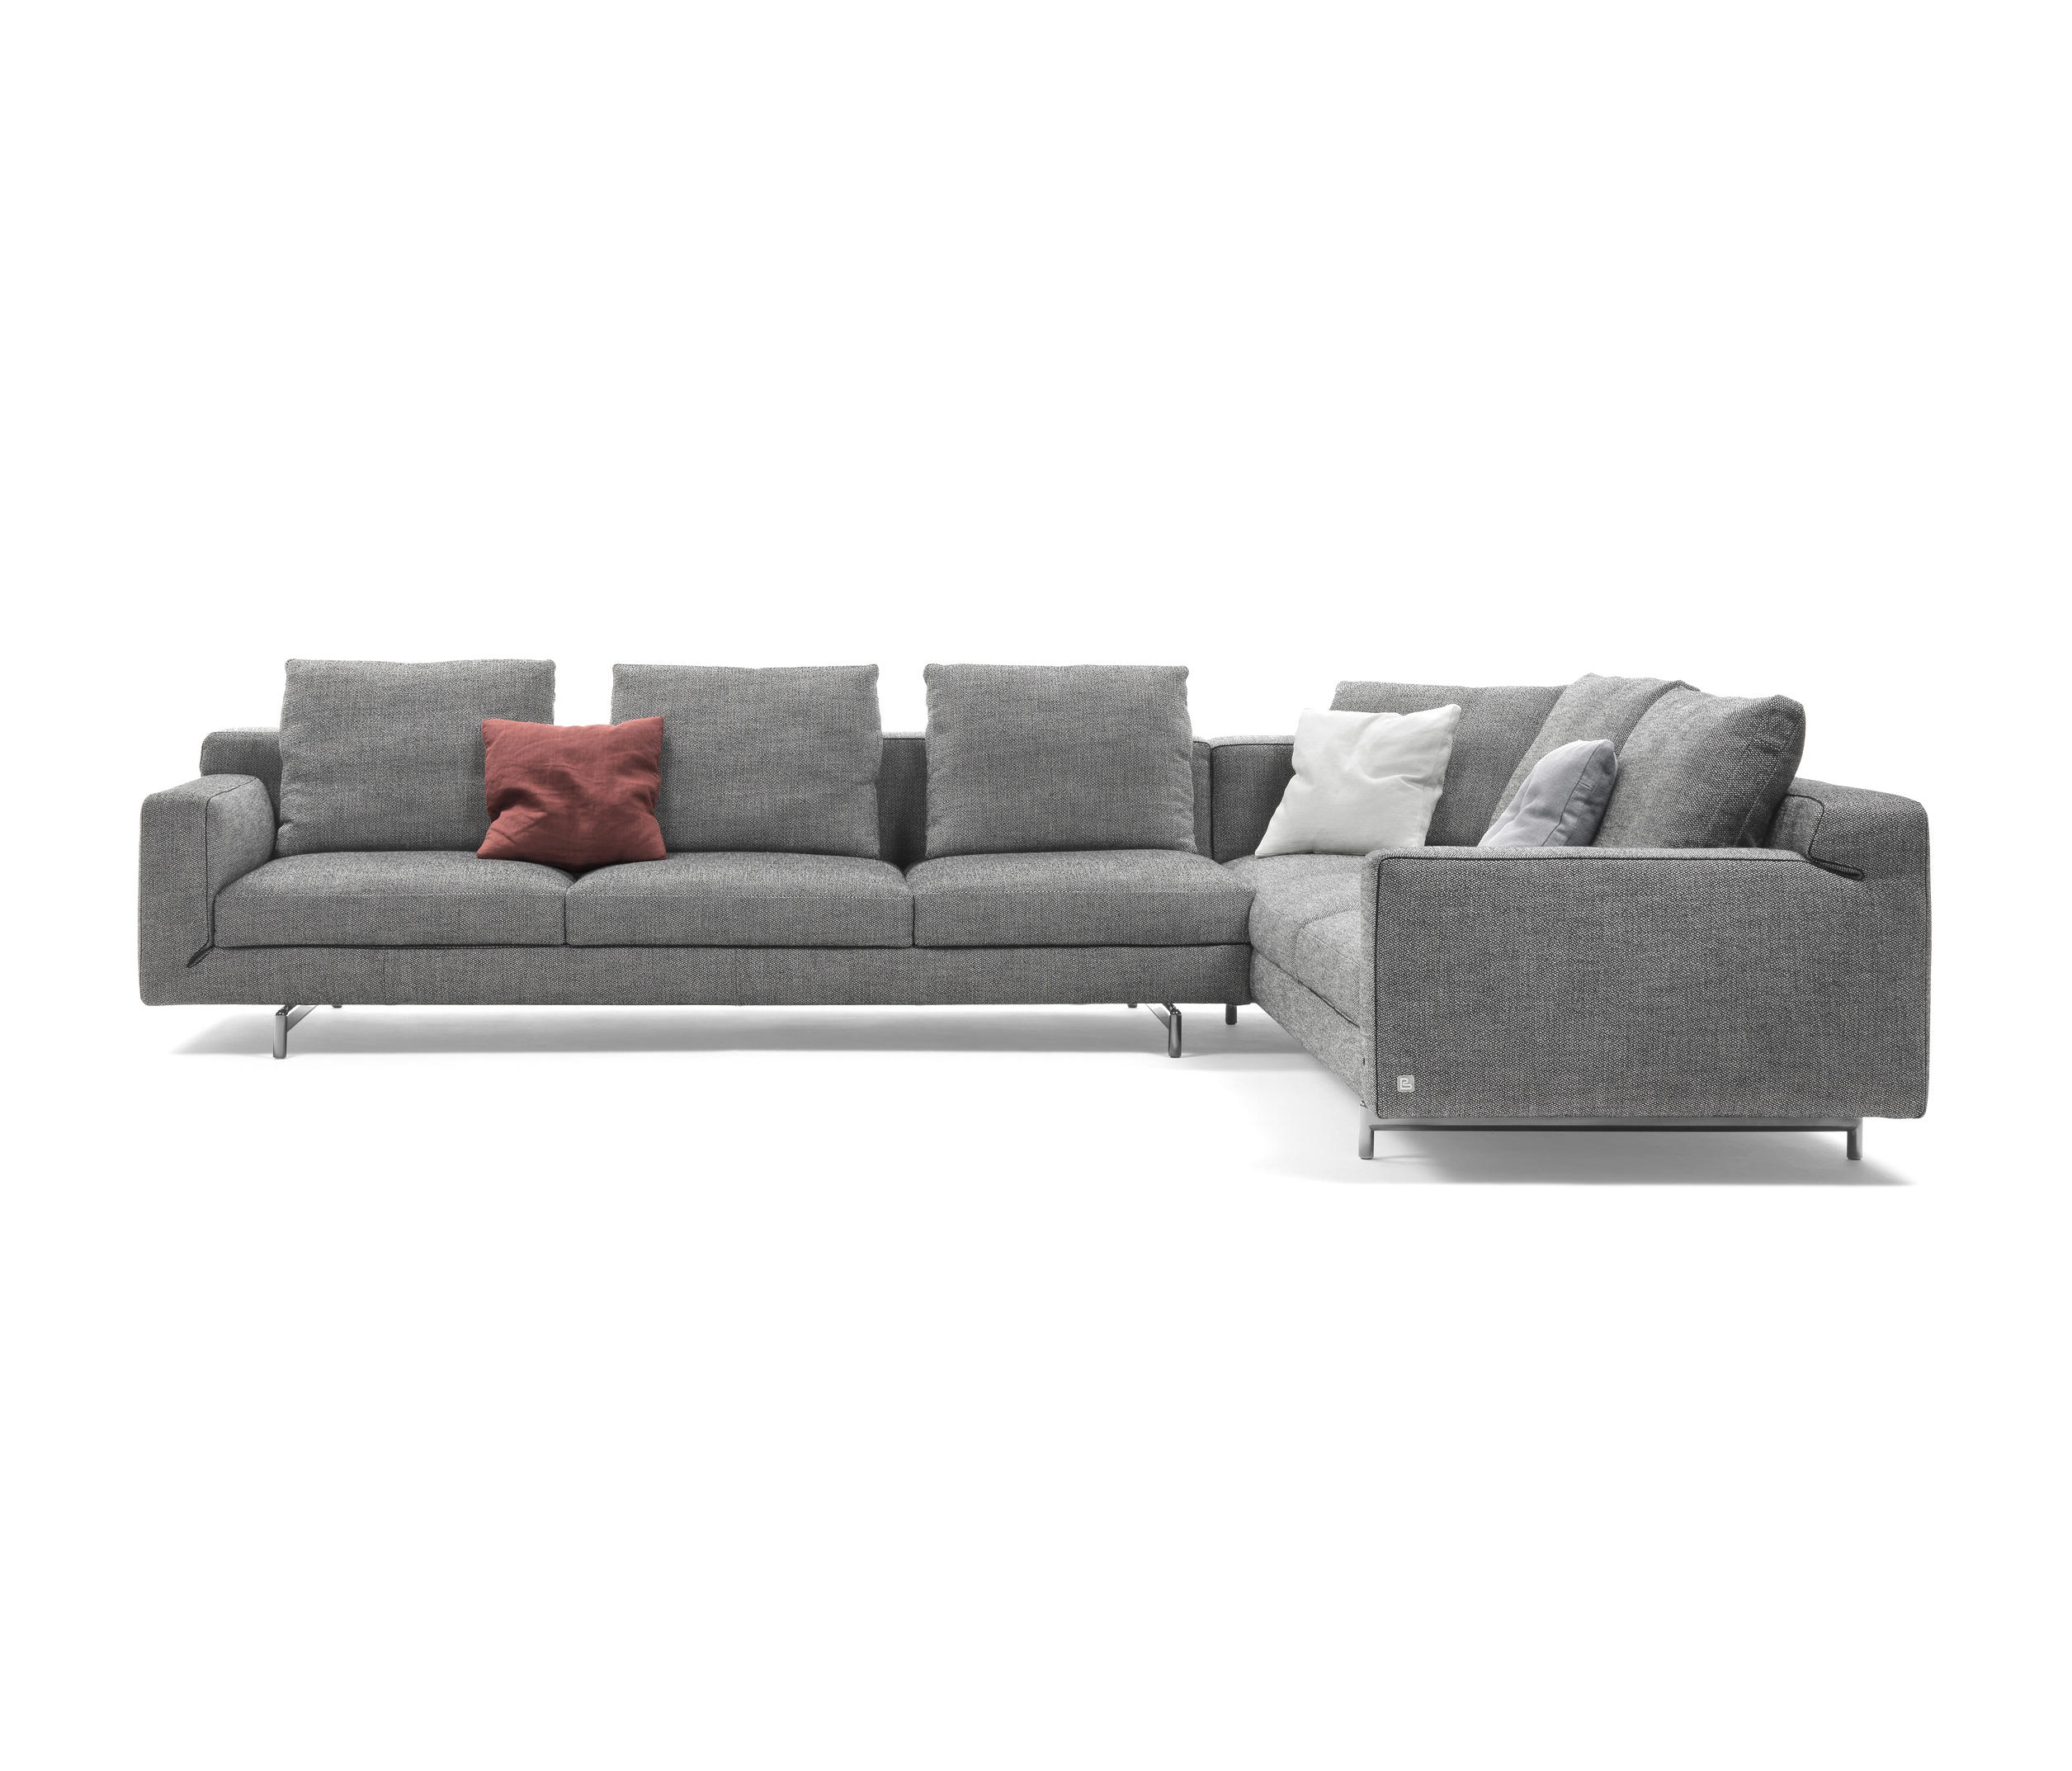 Taylor Sofa Sofas From Busnelli Architonic